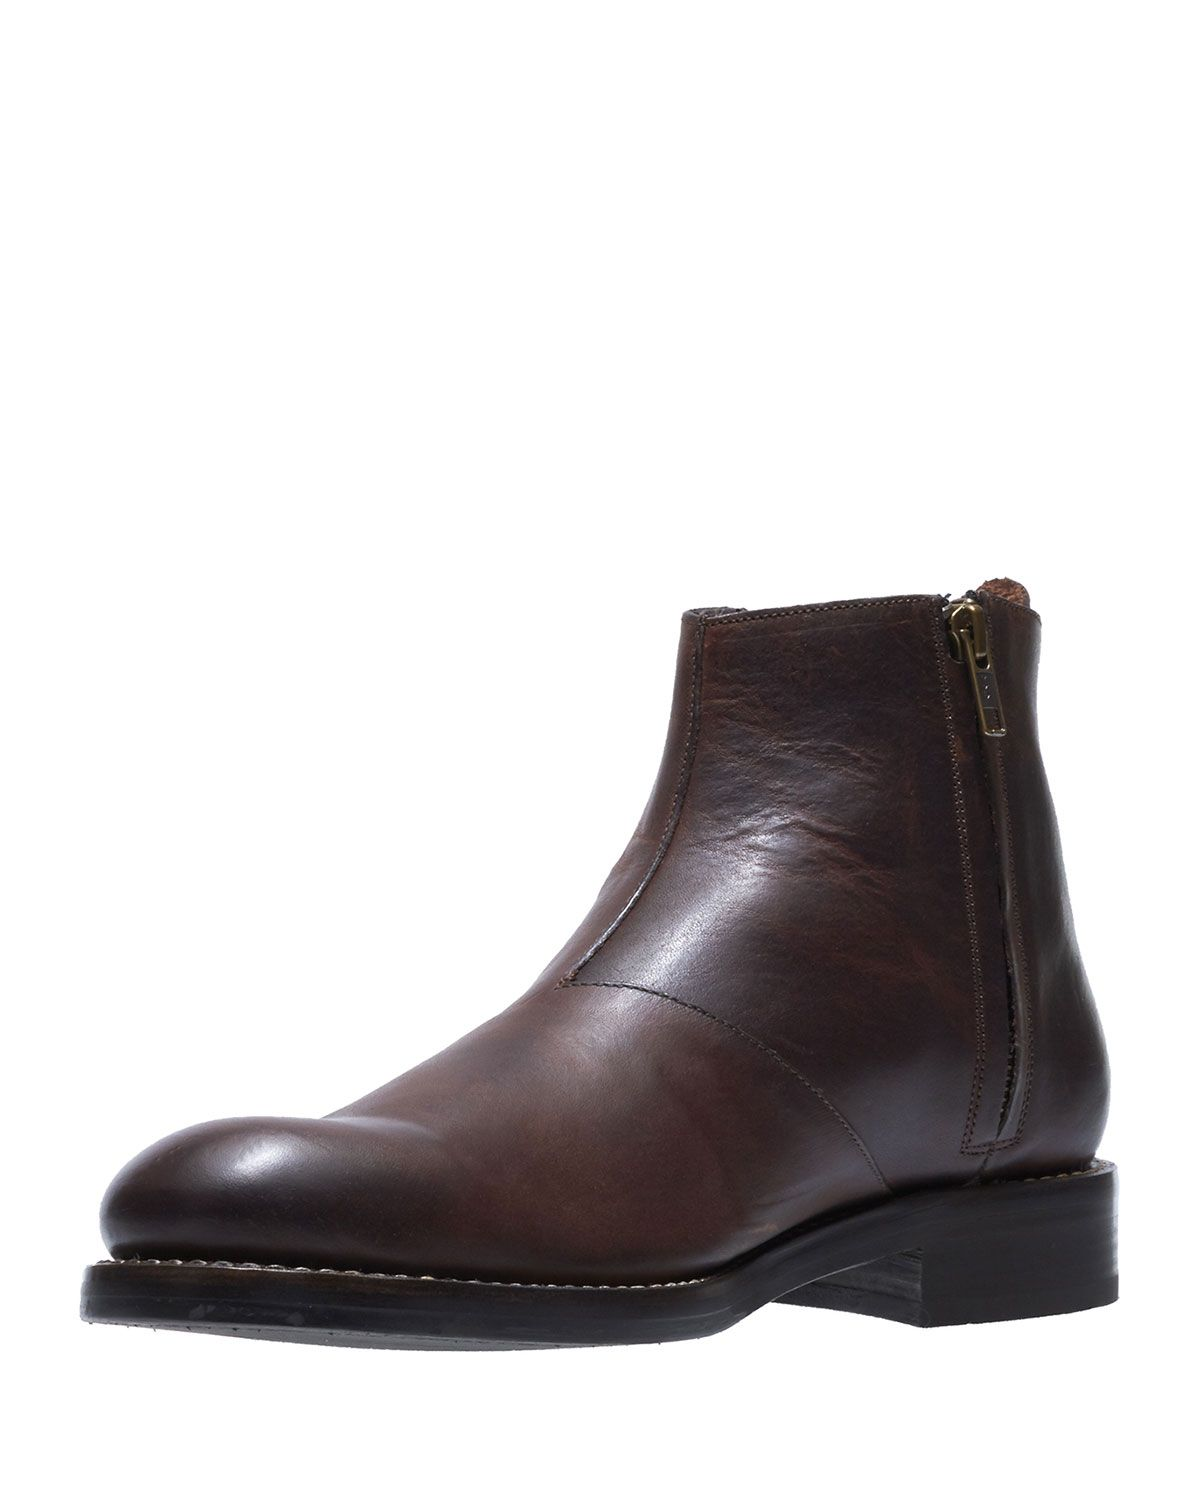 f7b5fbe2607a56 Wolverine Men s Montague Leather Chelsea Boots